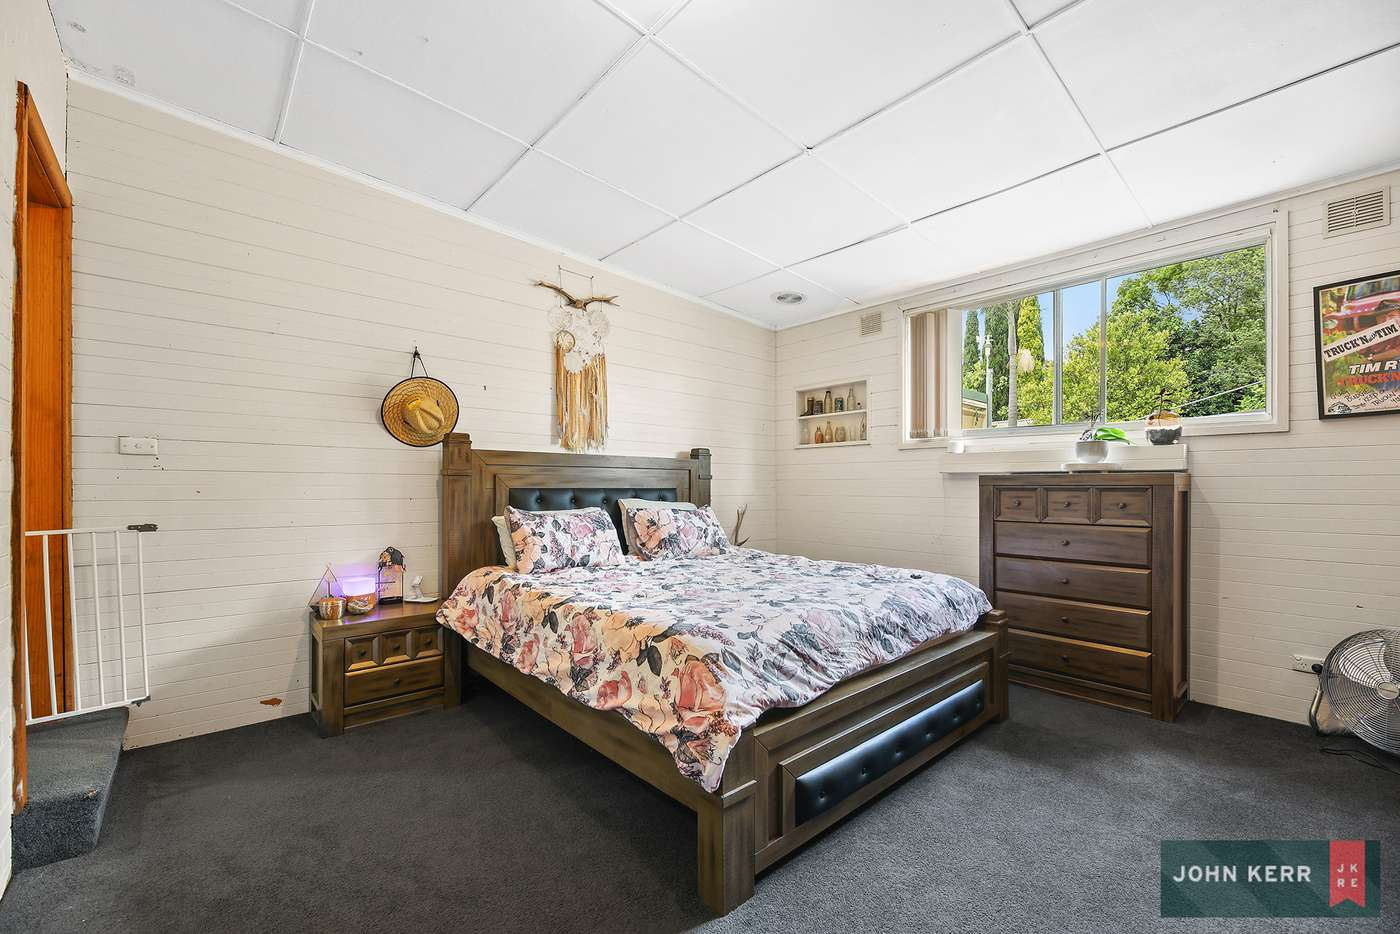 Fifth view of Homely house listing, 8 Murray Road, Newborough VIC 3825